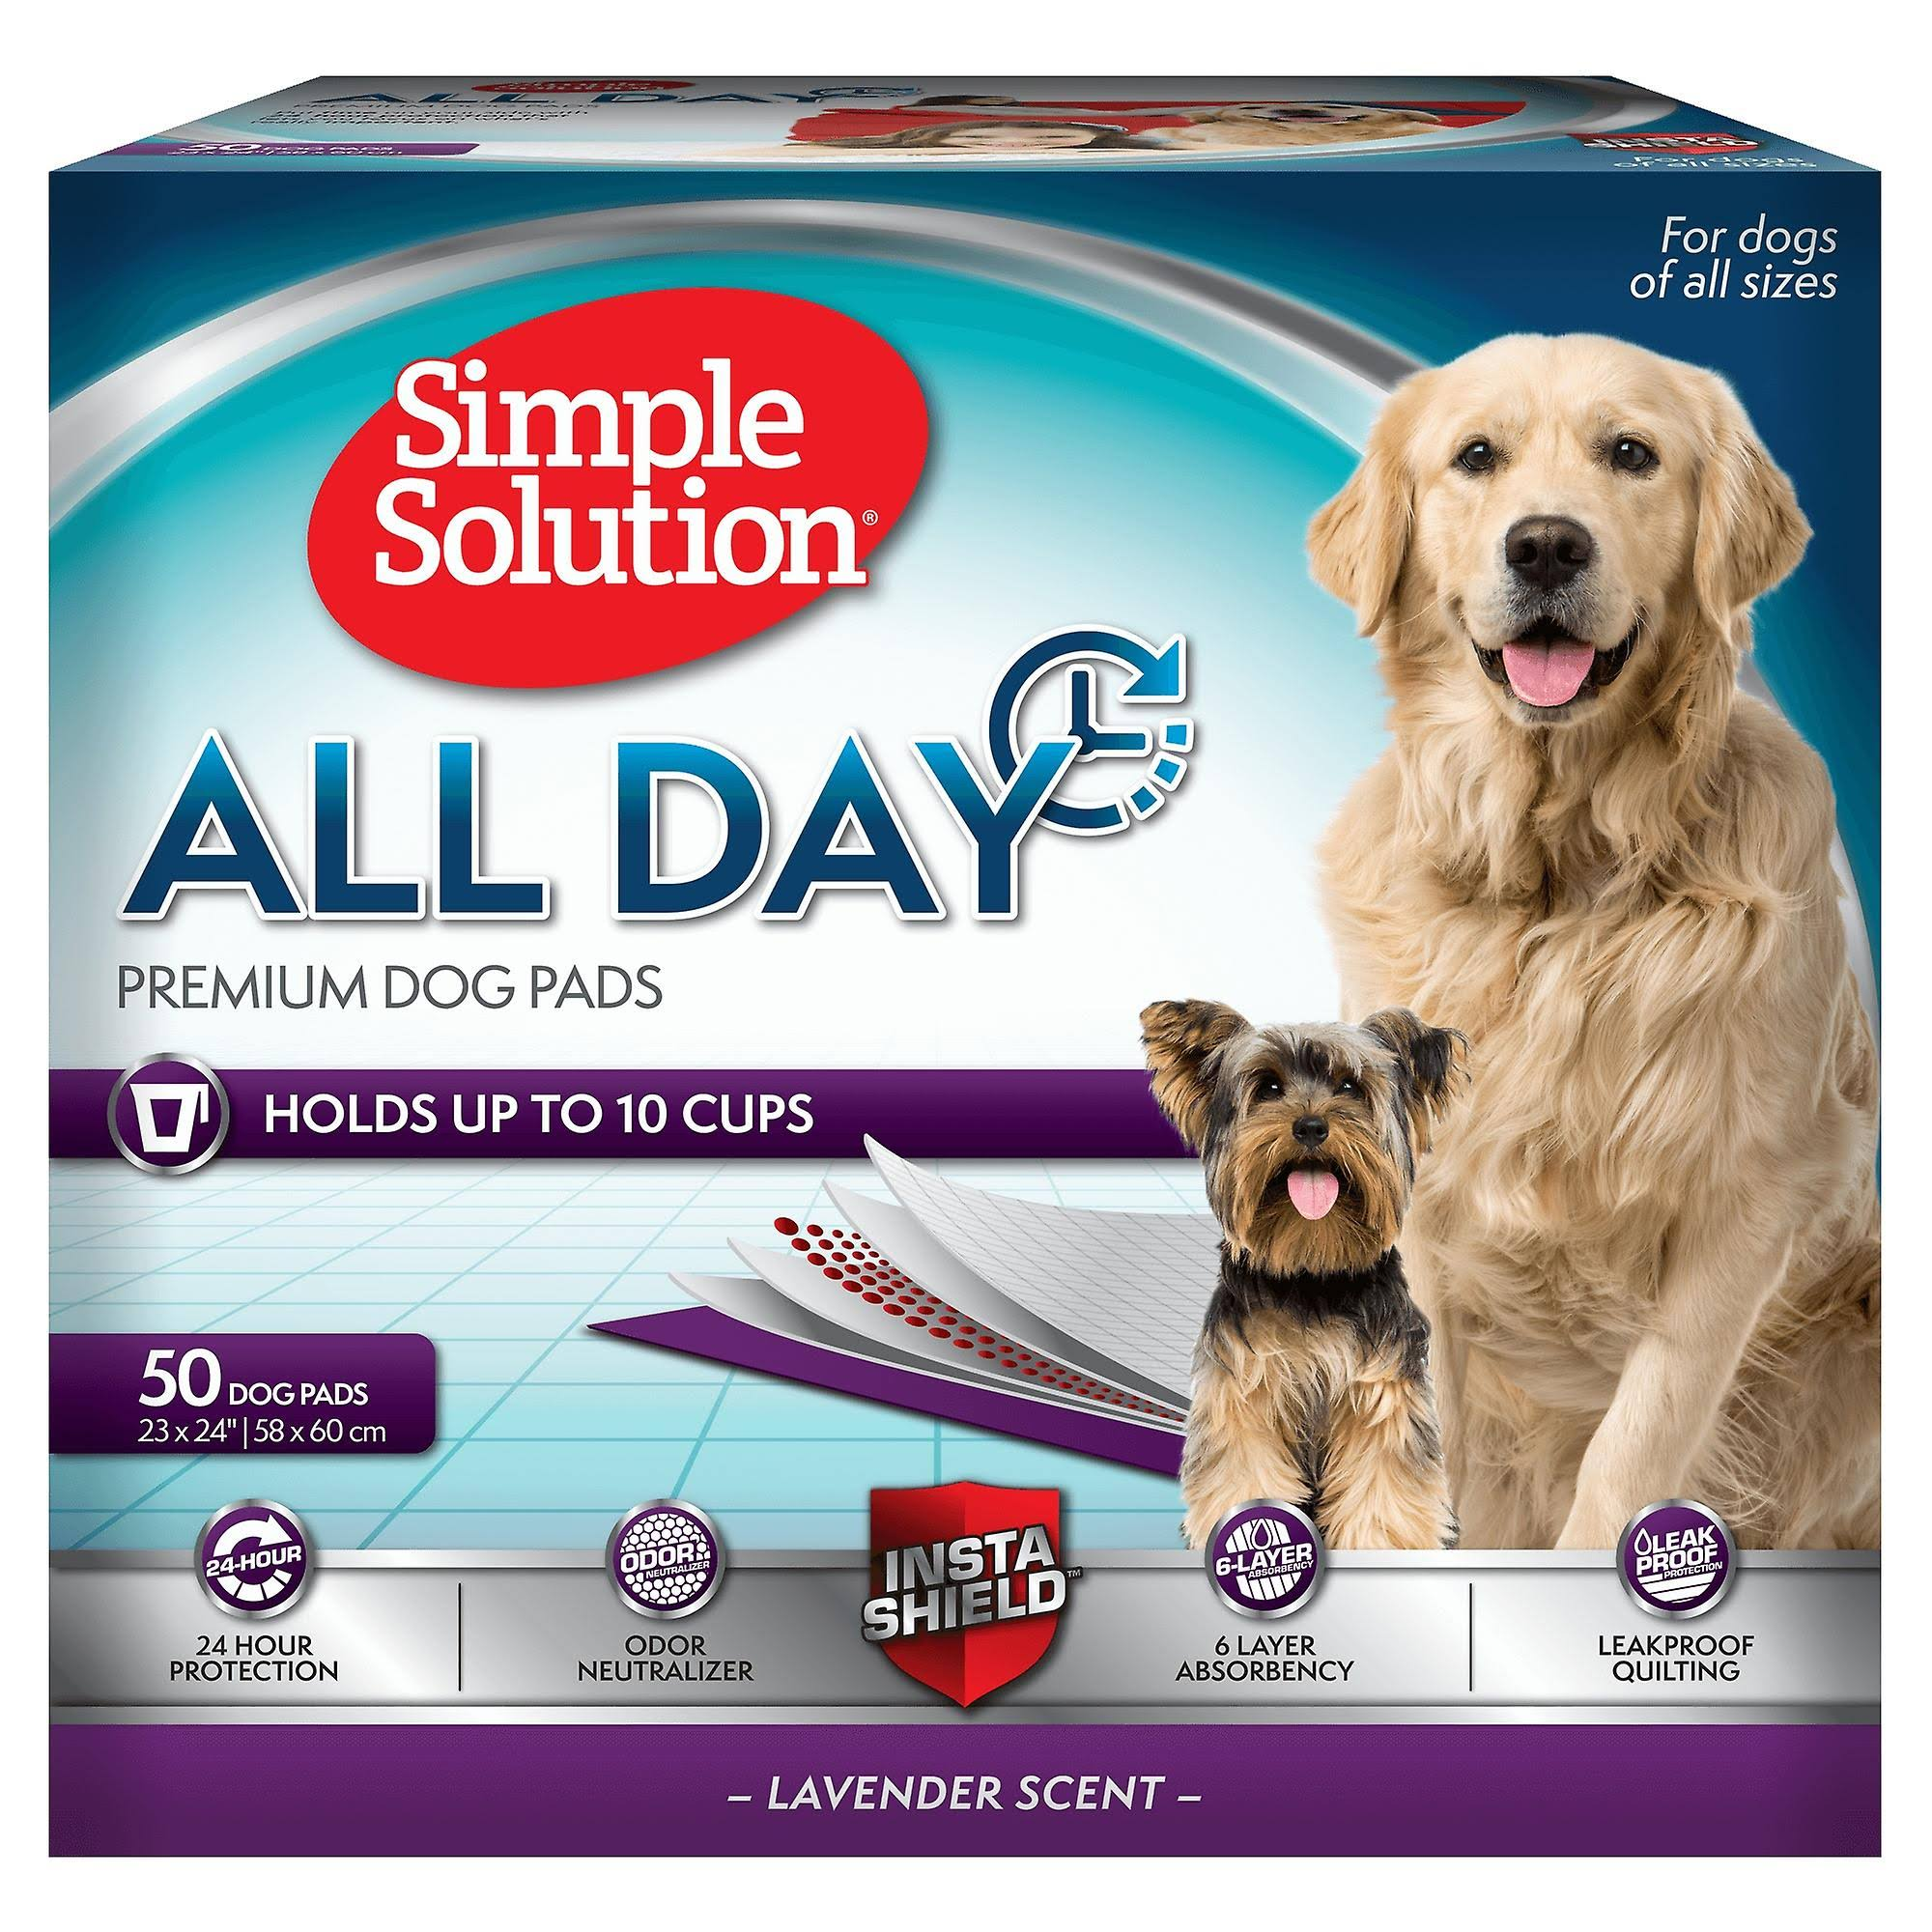 Simple Solution 6 Layer All Day Premium Dog Pads - Lavender Scent, 50pcs